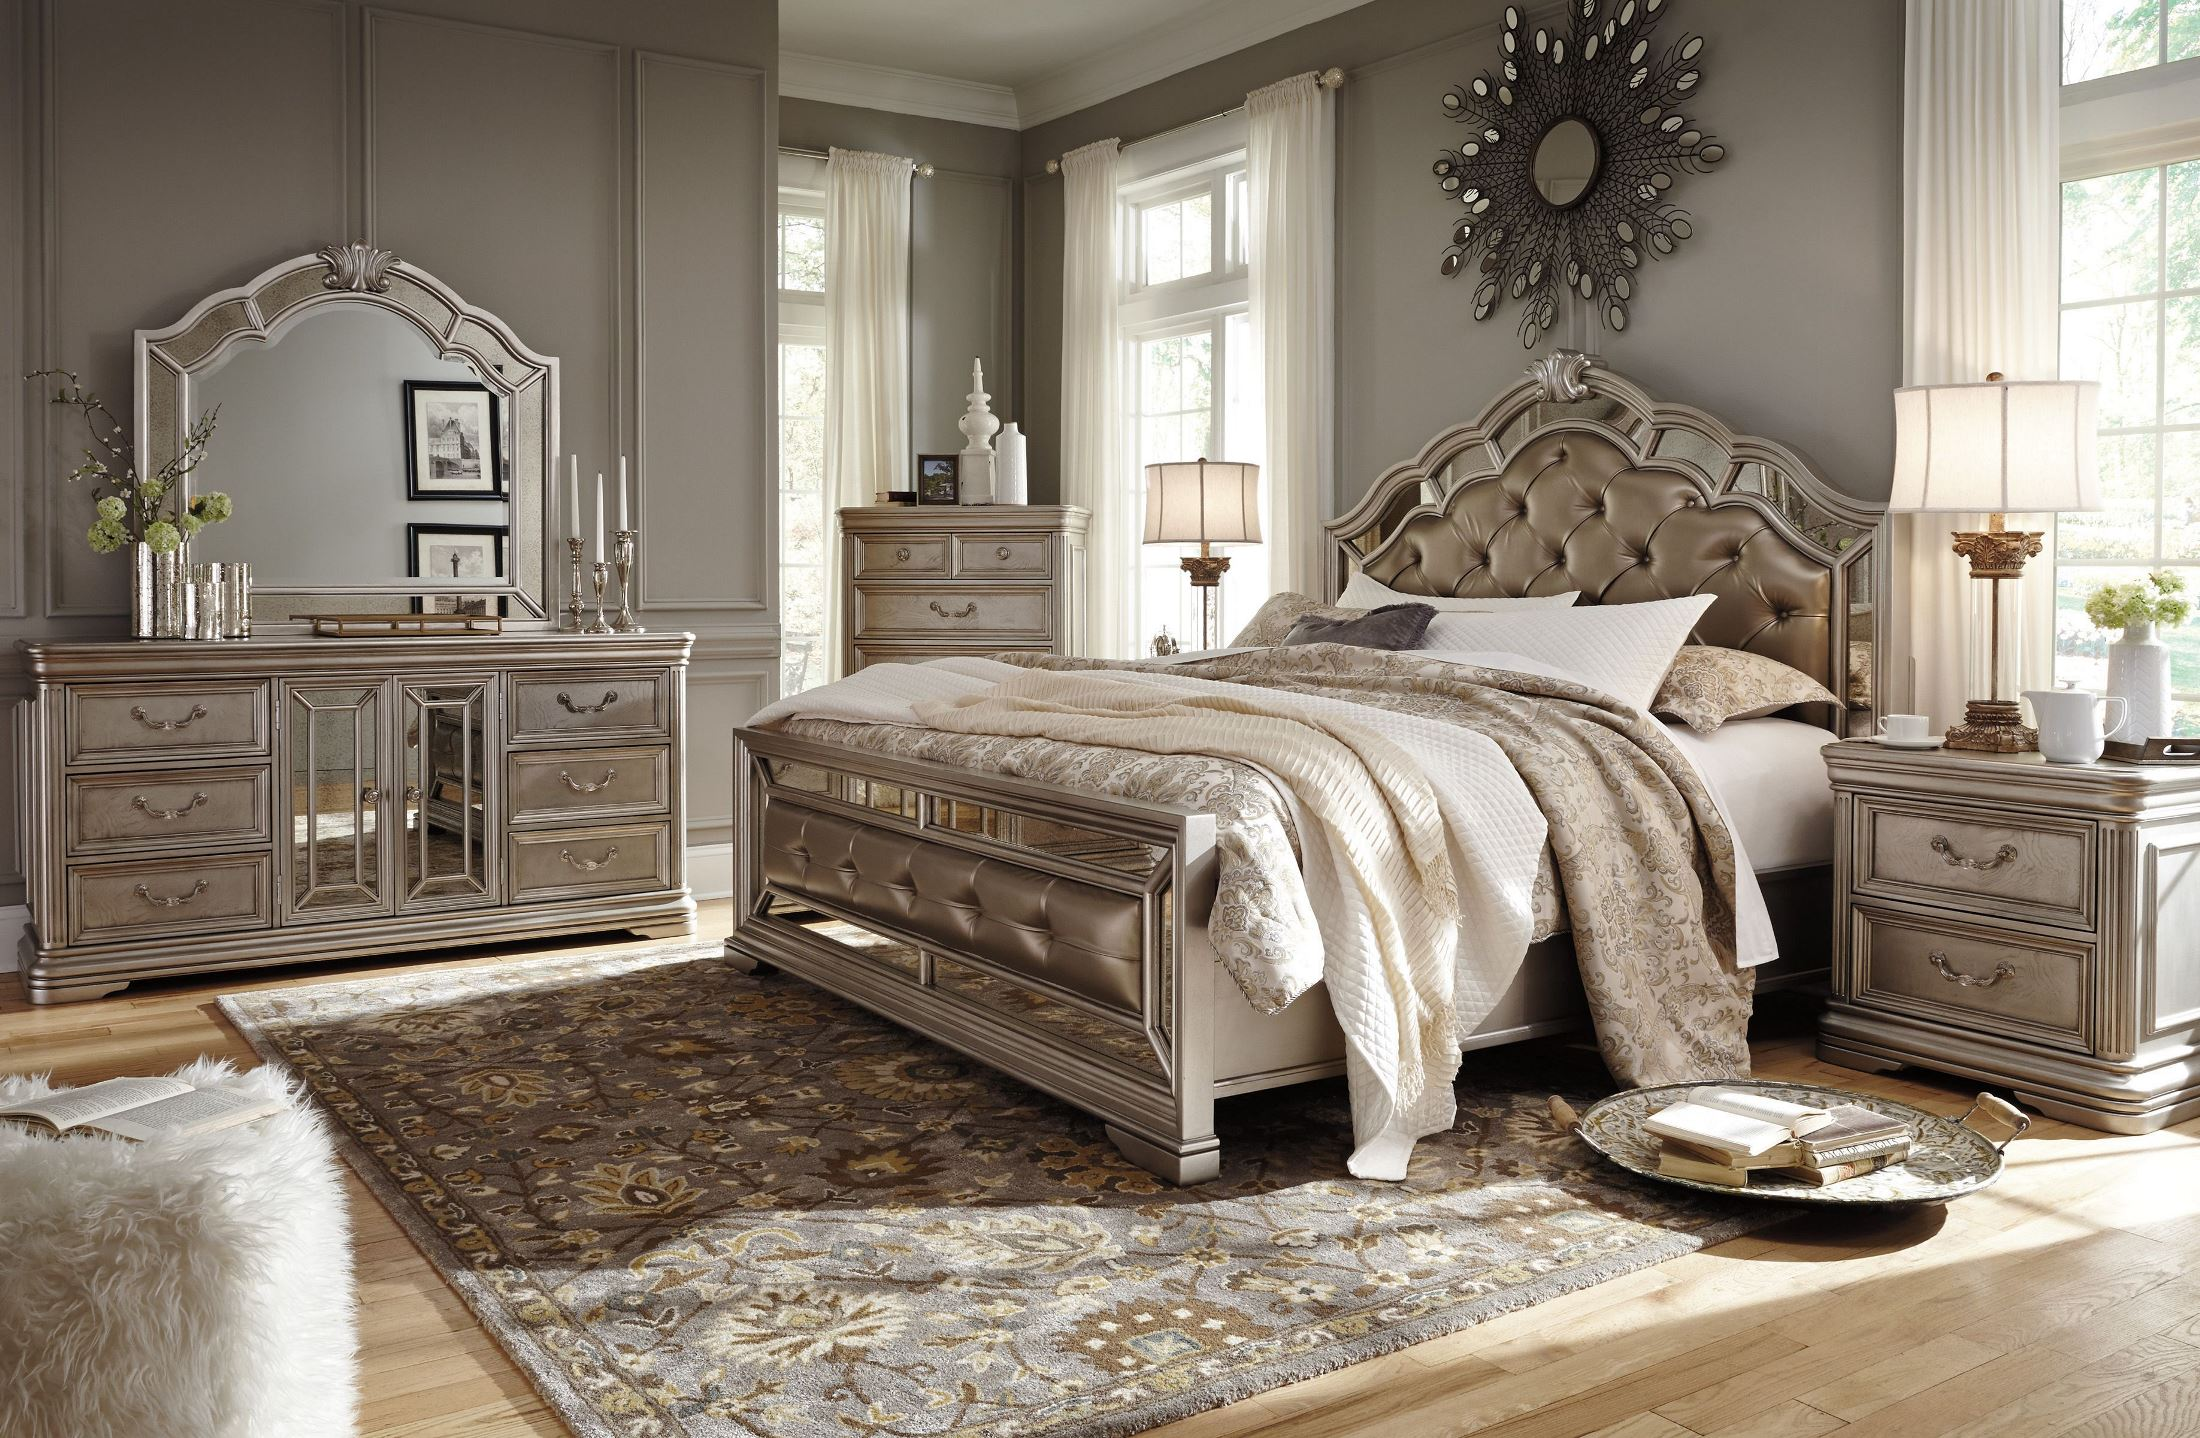 signature design by ashley birlanny silver upholstered 18331 | b720 31 36 46 58 56 97 92 q326